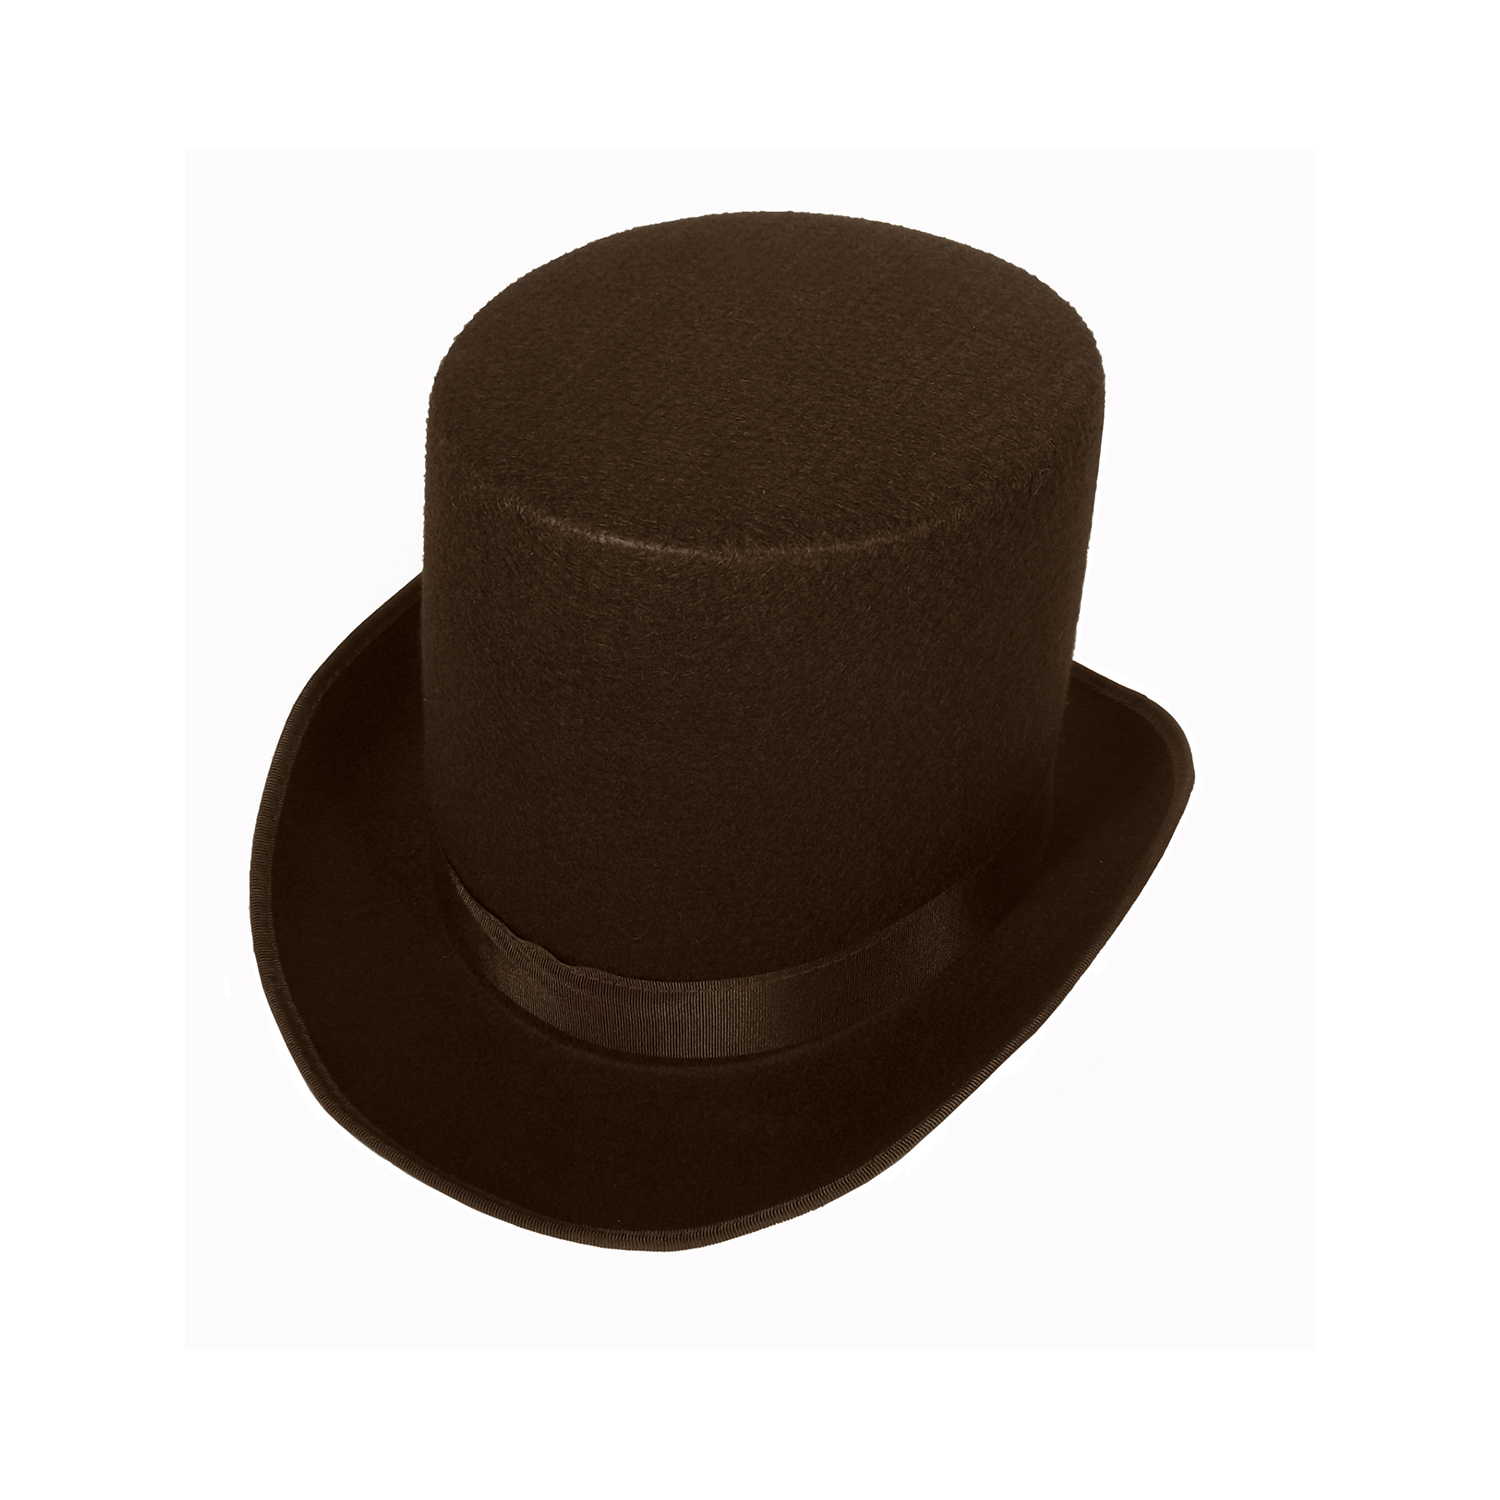 b52407ee3285f5 ... france coachman victorian costume top hat tall coachman top hat  victorian hat 827f2 07ad3